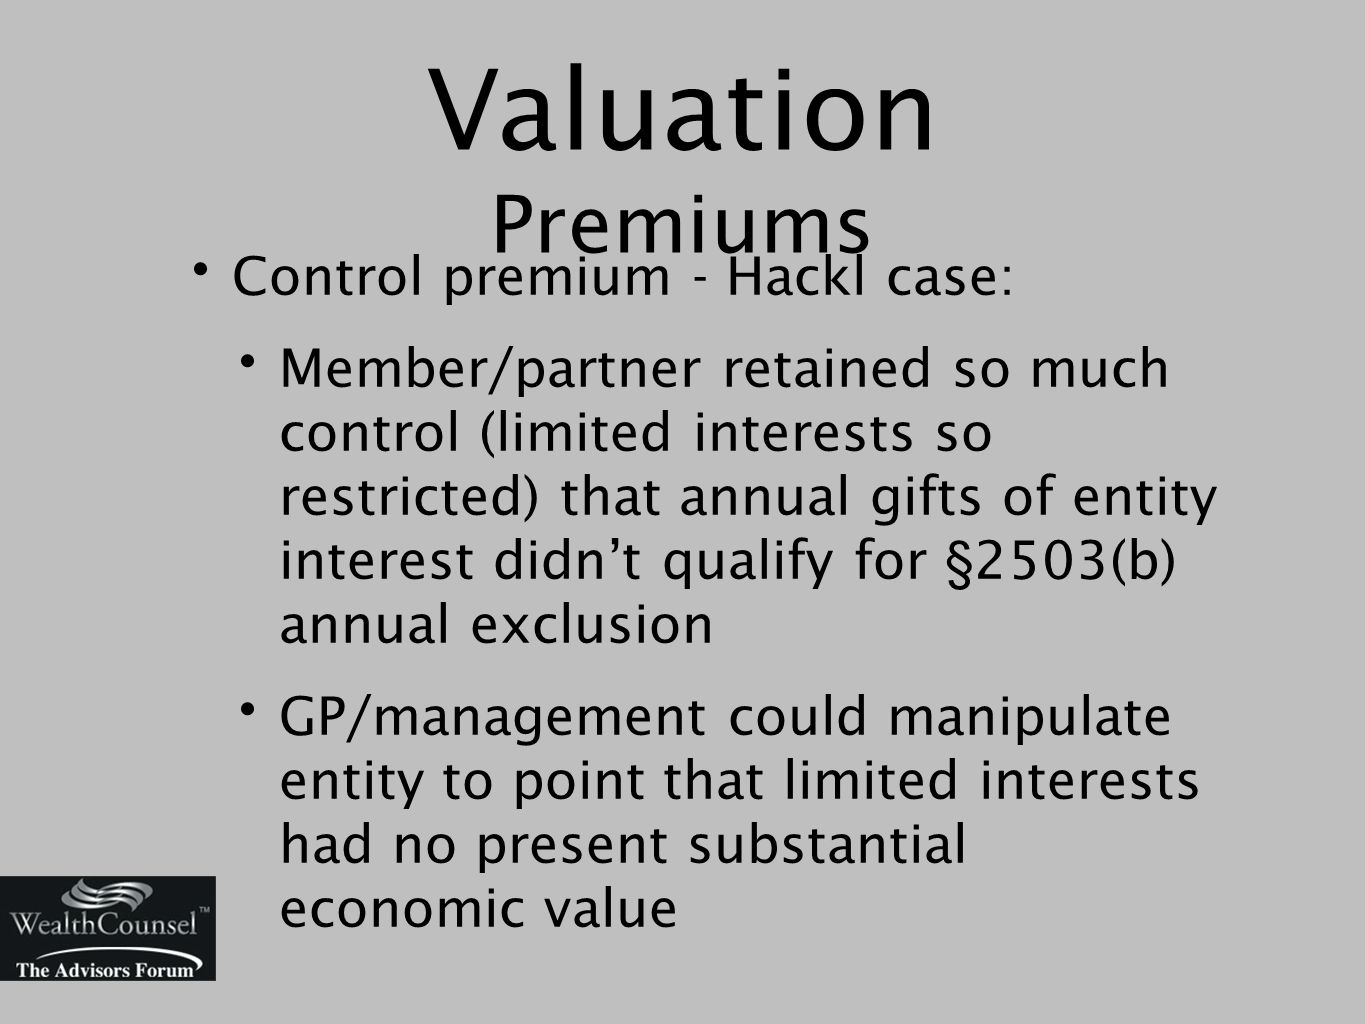 Valuation Premiums Control premium - Hackl case: Member/partner retained so much control (limited interests so restricted) that annual gifts of entity interest didn't qualify for §2503(b) annual exclusion GP/management could manipulate entity to point that limited interests had no present substantial economic value